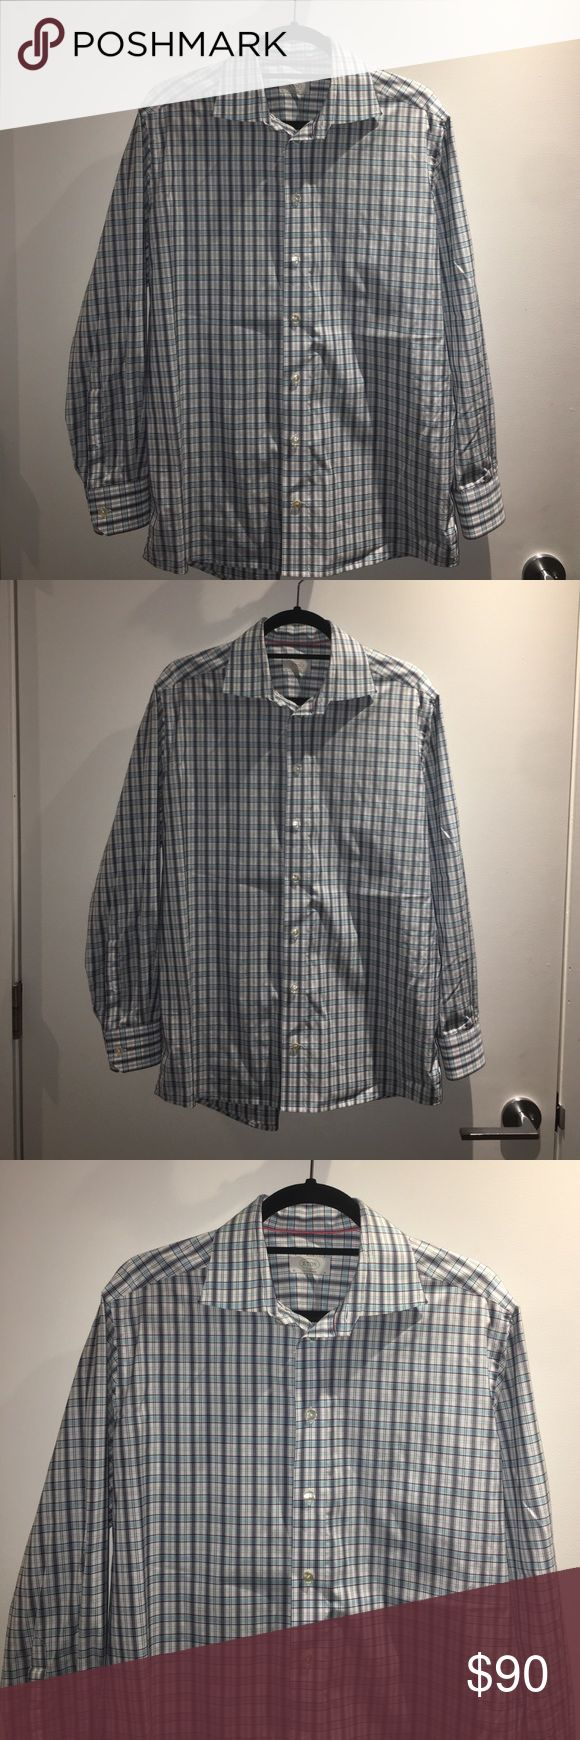 """ETON Dress Shirt ETON Dress Shirt Contemporary. Size says 16/41 but the sleeves were hemmed and measure 28"""". The colors of the shirt are navy blue, light blue, and white. Excellent, like new condition. Retails $285. 100% cotton. Made in Sweden. Machine wash. Eton Shirts Dress Shirts"""